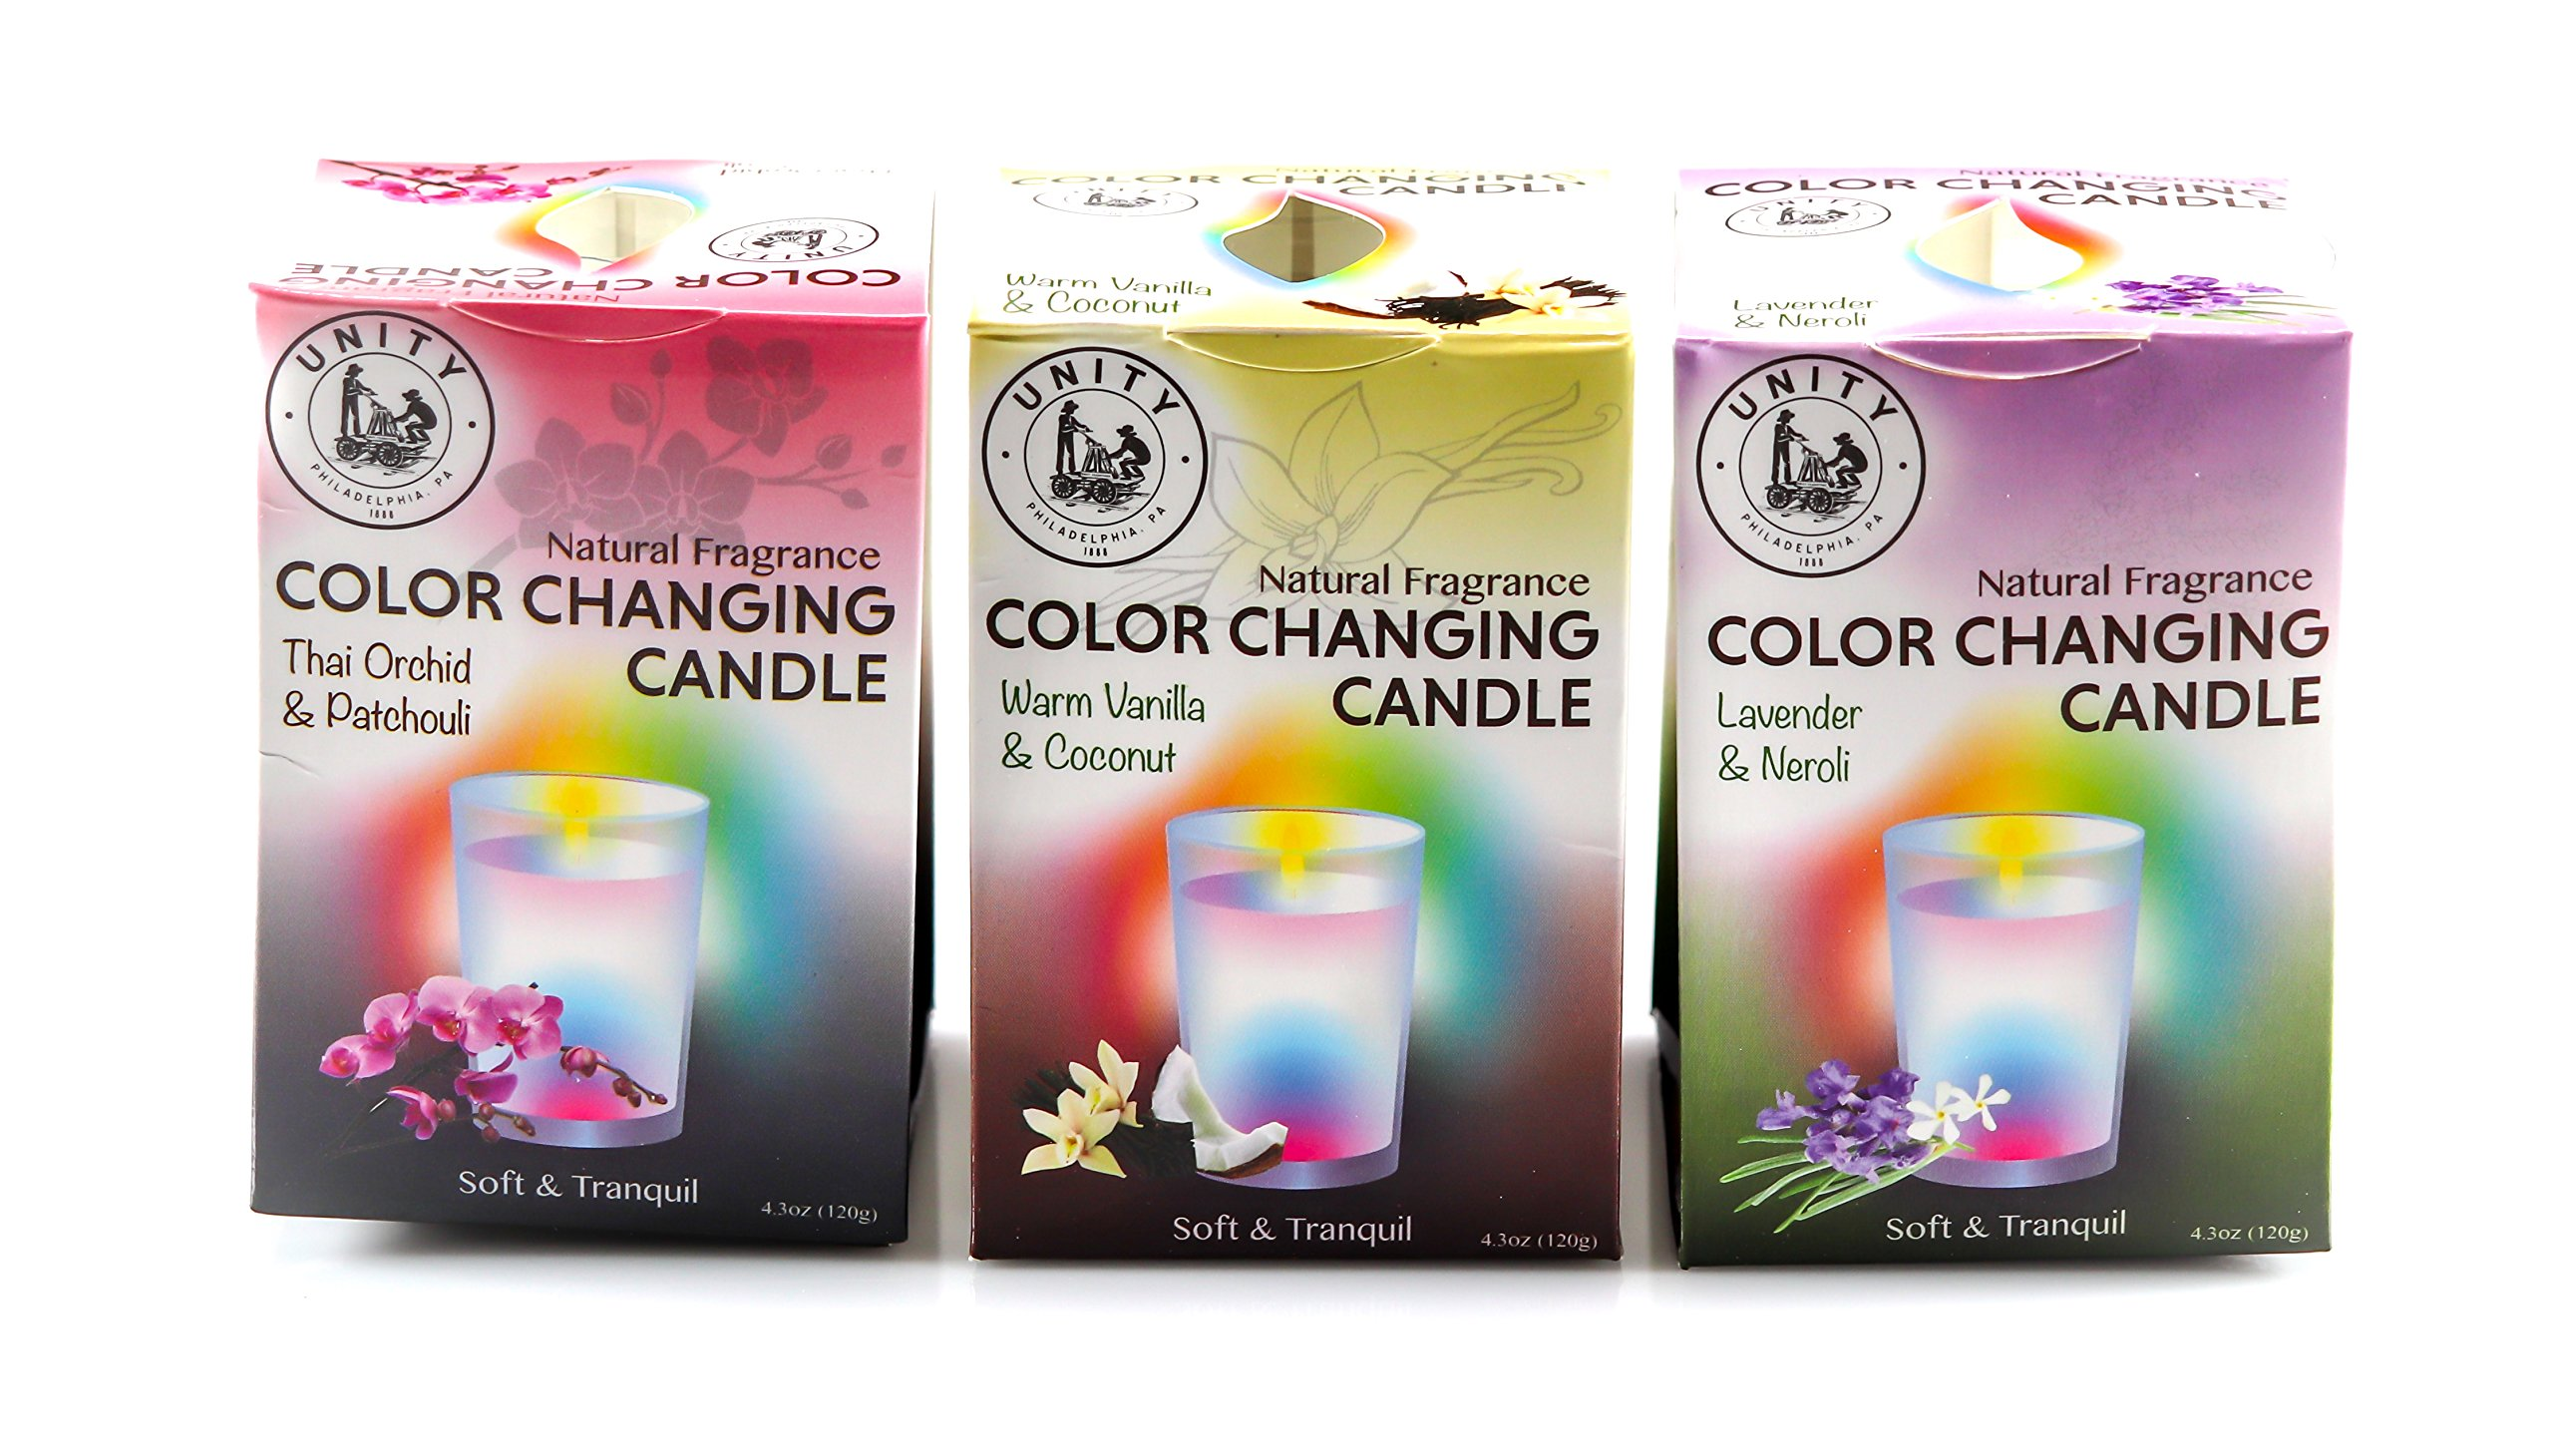 Unity Scented Color Changing Candles - 3-Pack - Natural Fragrances - Peaceful, Ambient Light for Your Home & Bath - Glass Jar - Color Changing Fiber-Optic Wick - No Batteries Required! by Unity-Frankford